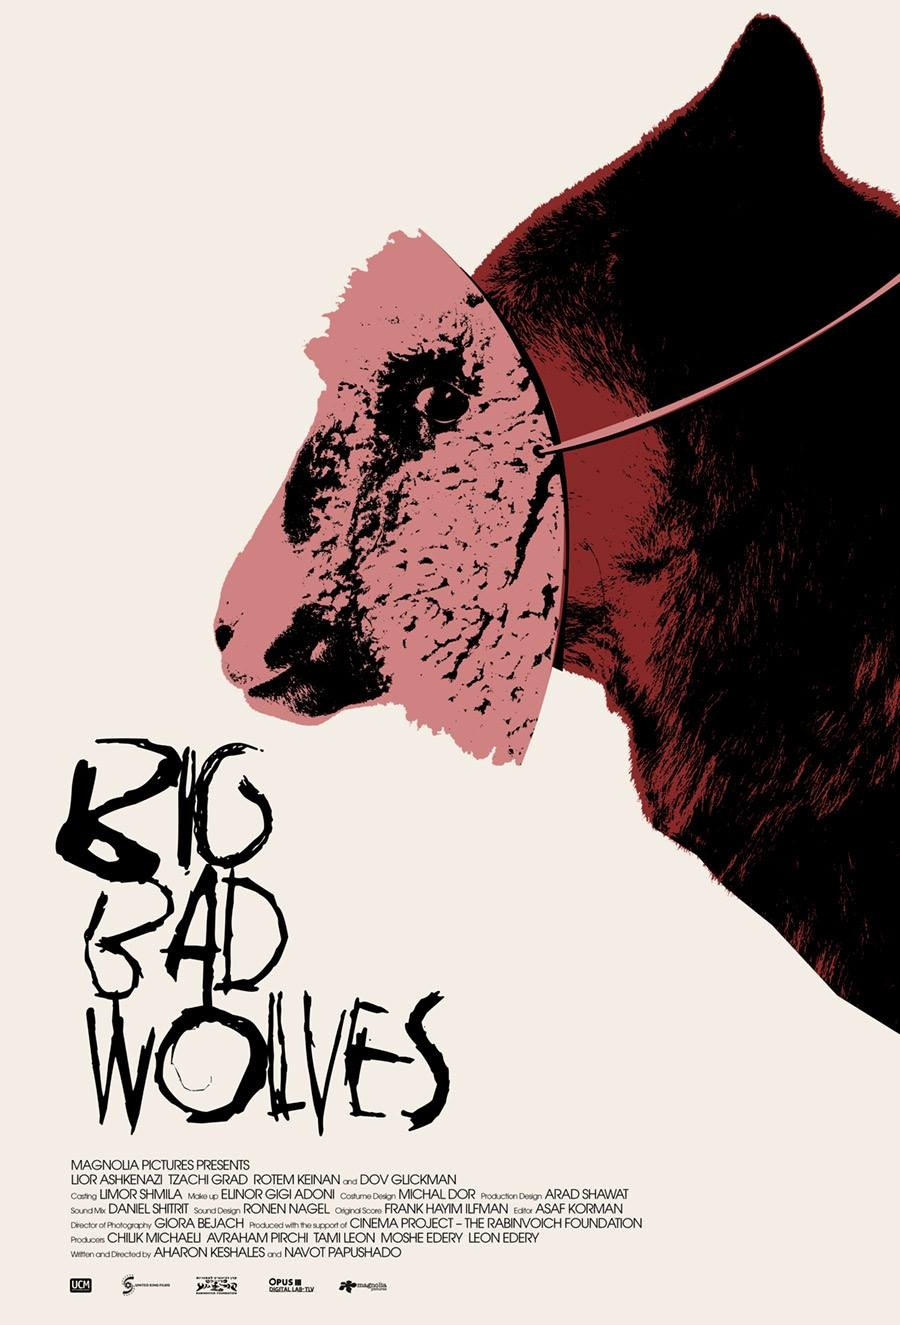 Awesome Alternate Big Bad Wolves Posters